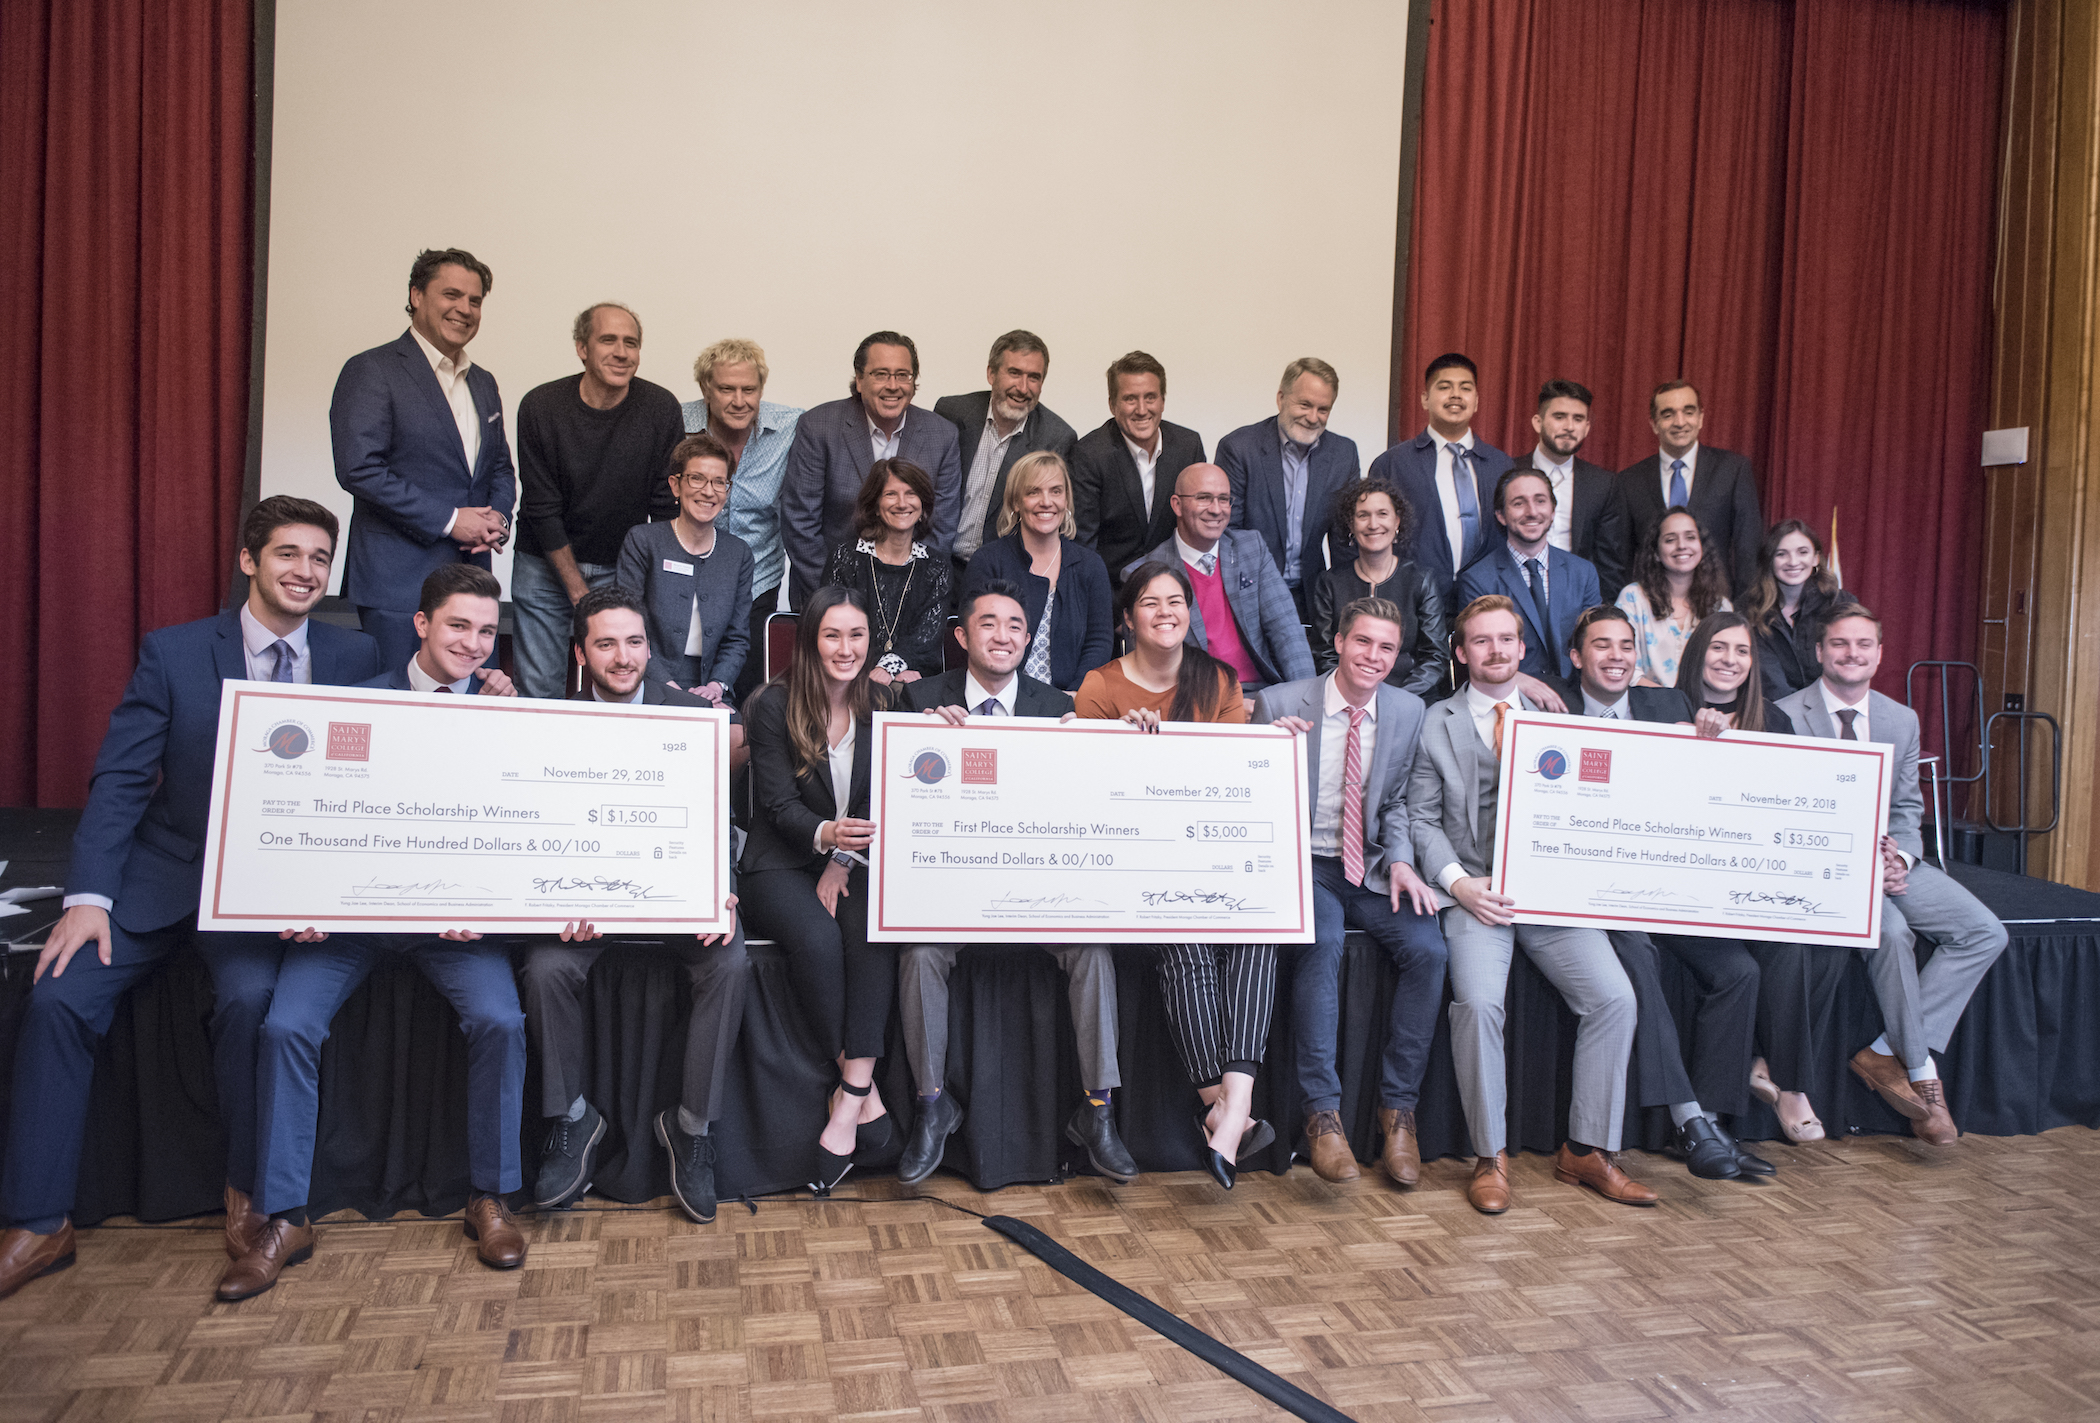 Winning teams pose at the Rheem Theater Case Study Competition